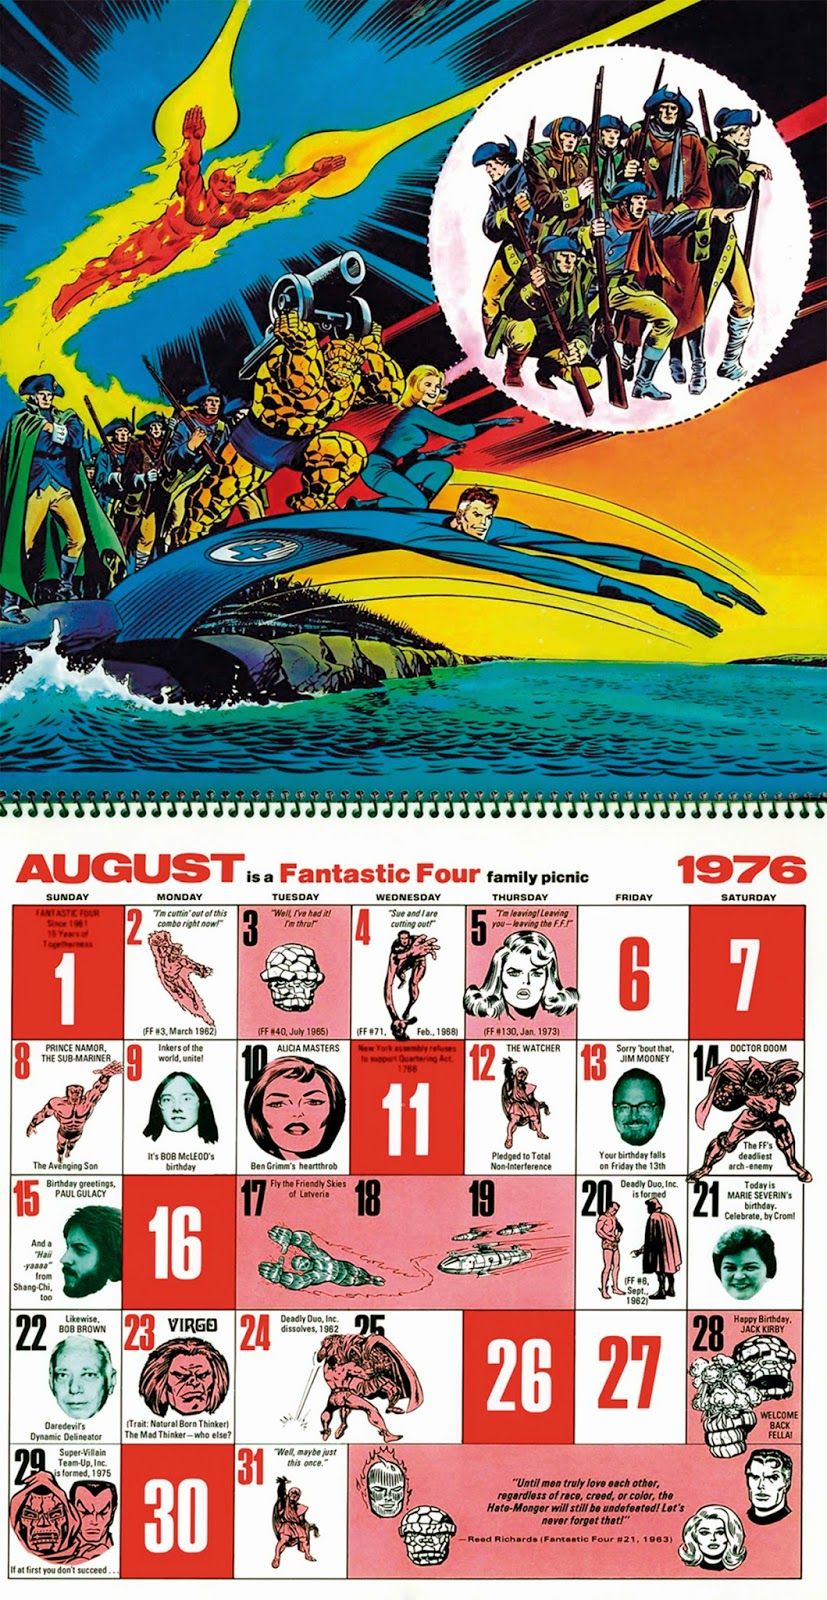 His Name Is Studd 1976 The Mighty Marvel Bicentennial Calendar